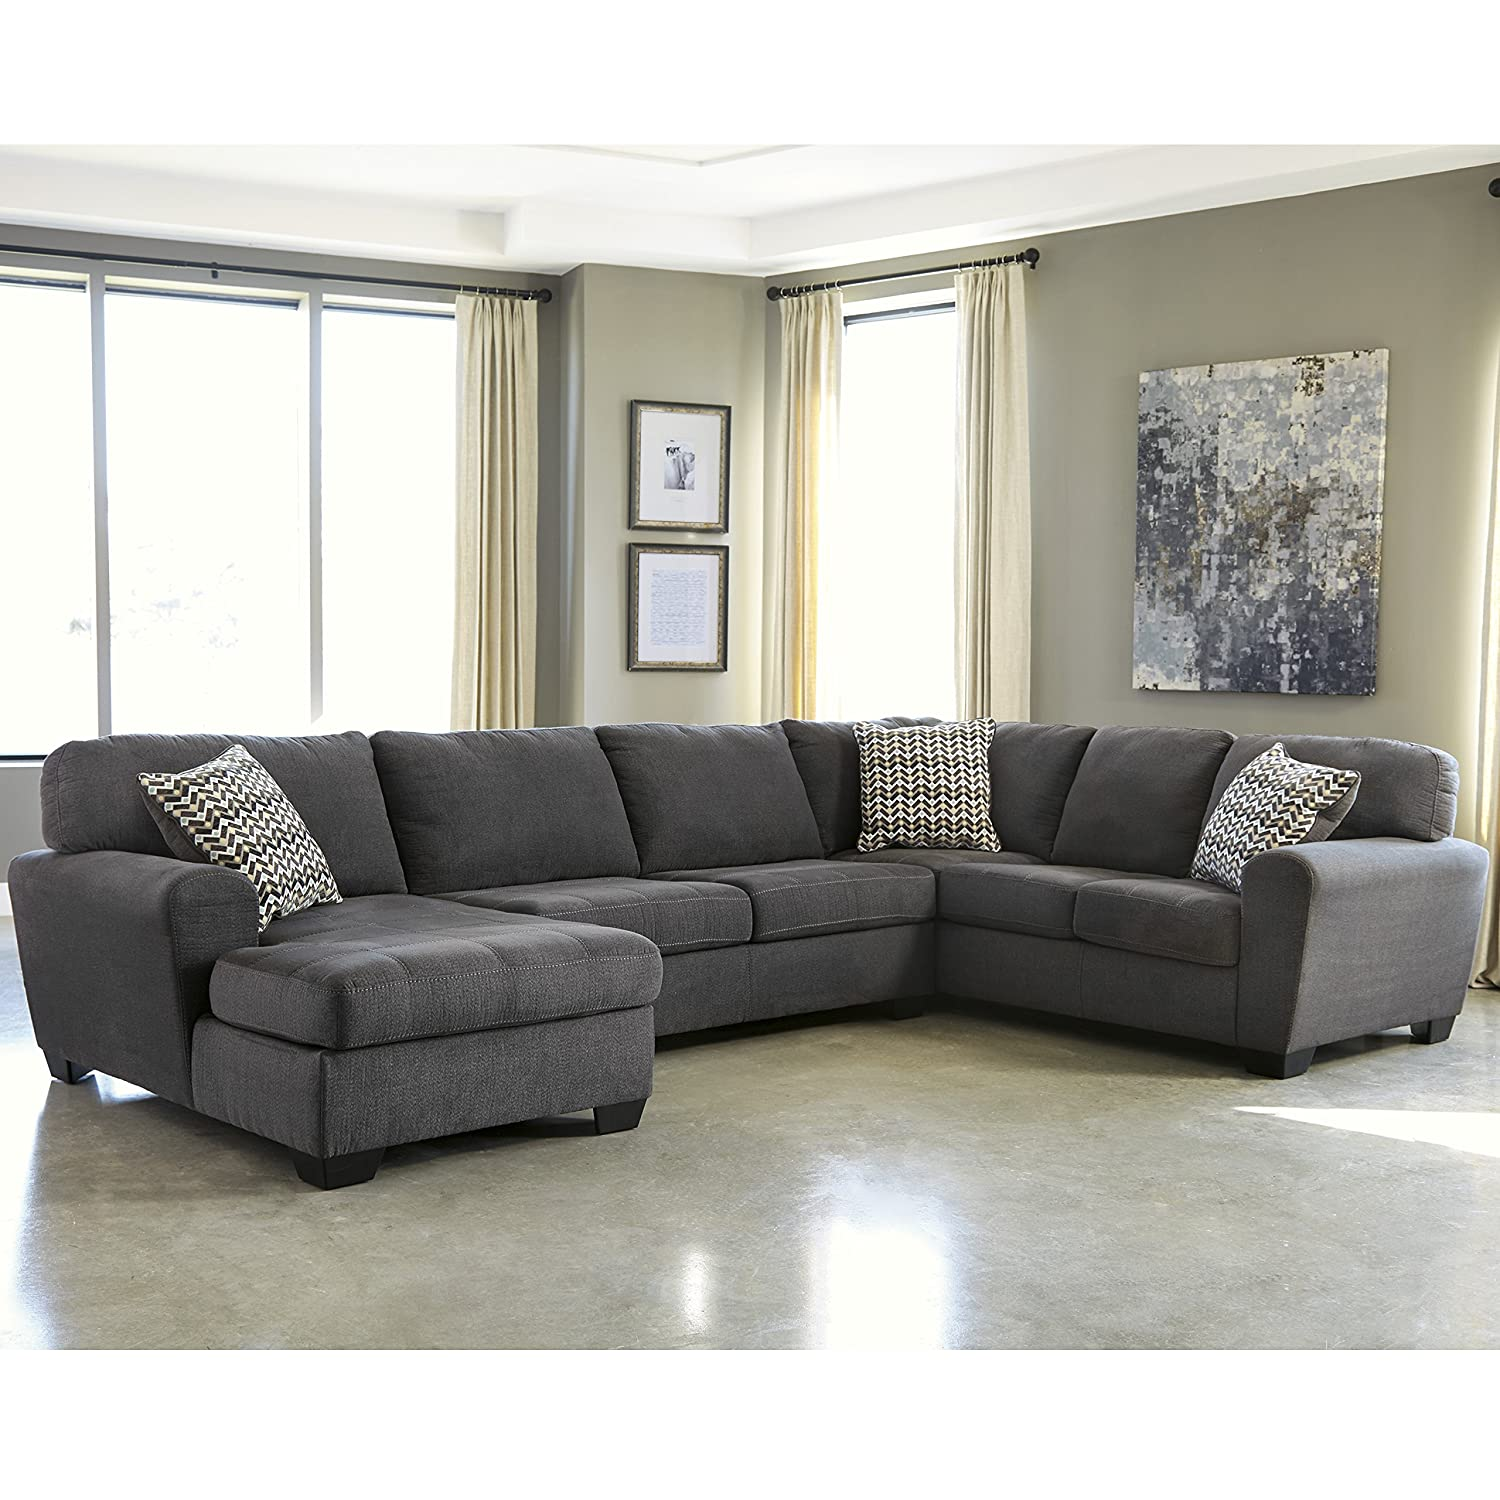 Flash Furniture Benchcraft Sorenton 3-Piece RAF Sofa Sectional in Slate Fabric